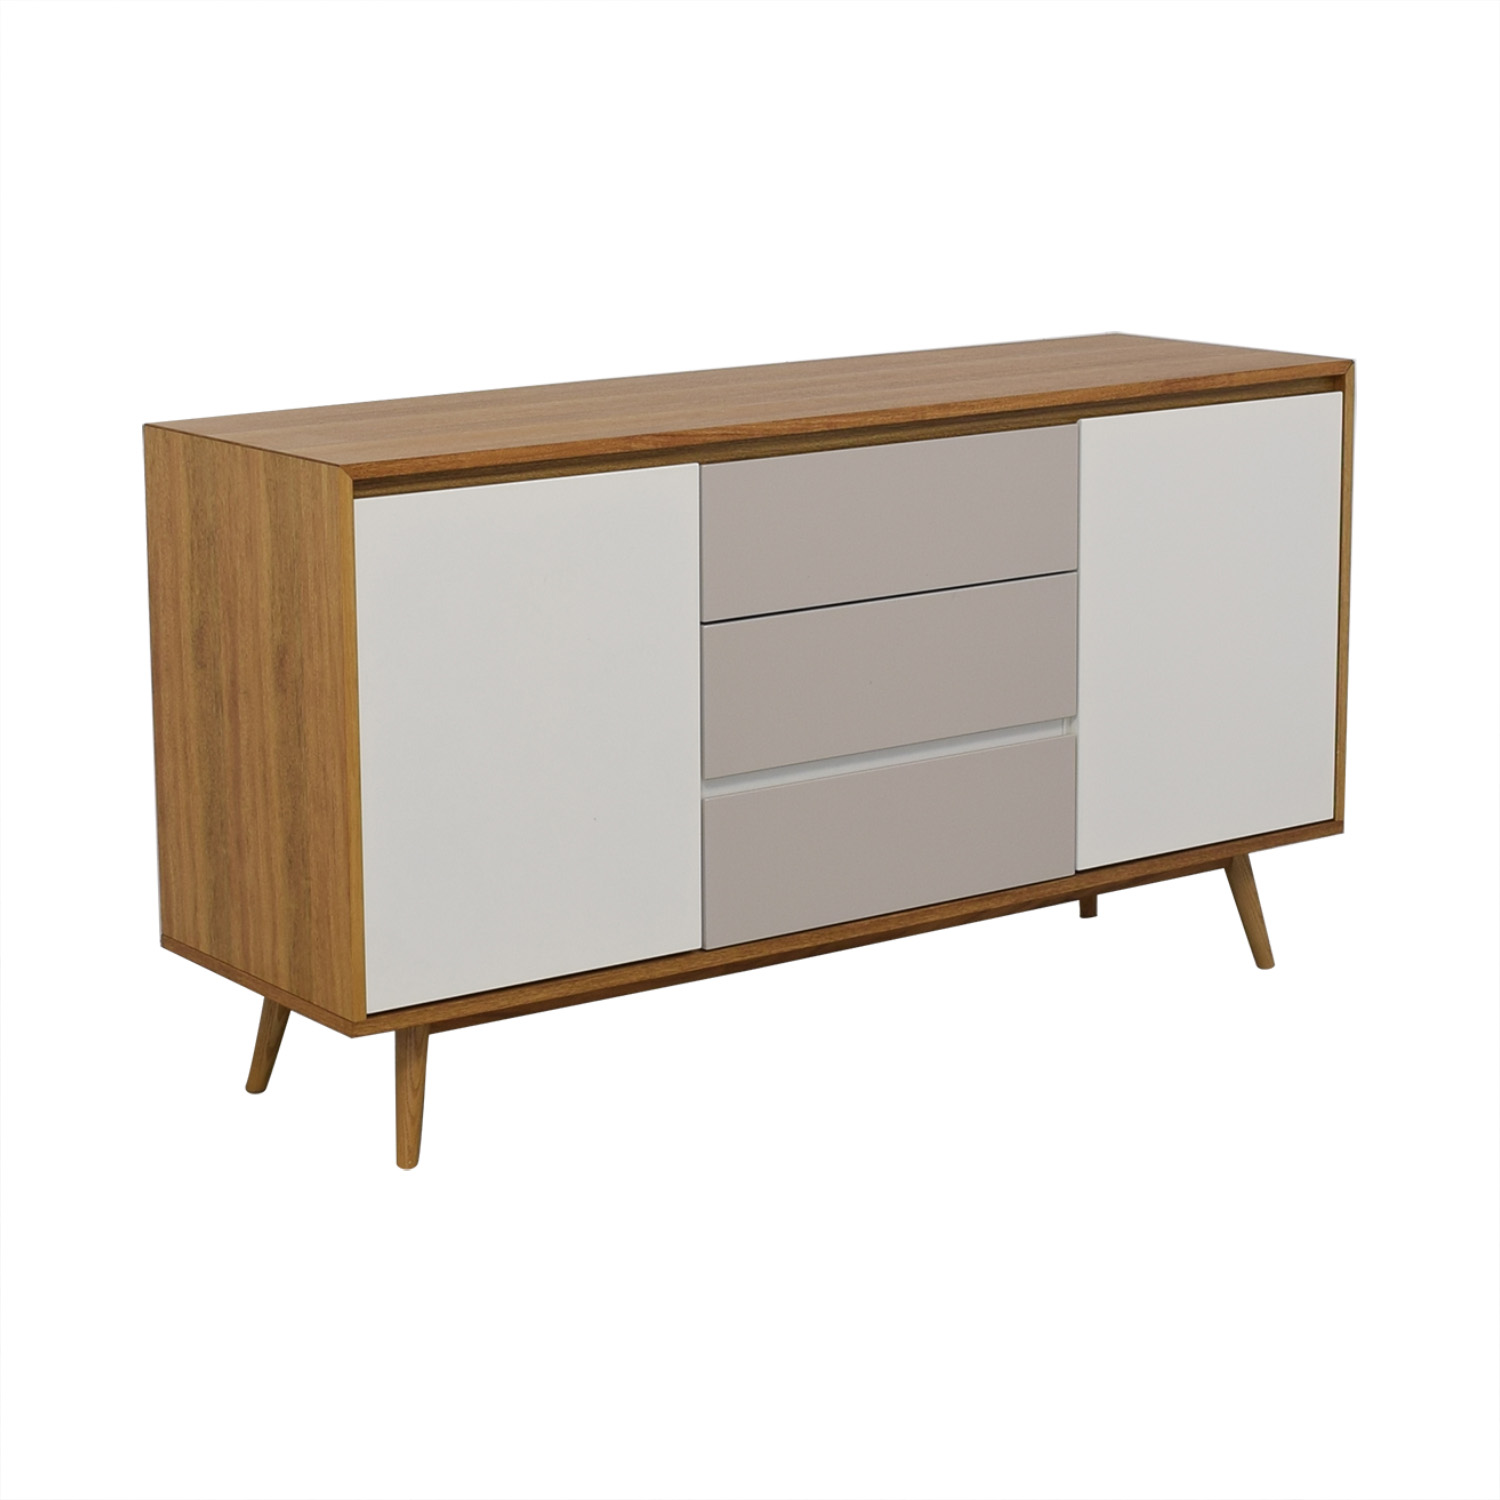 Rove Concepts Rove Concepts Lucas Sideboard on sale